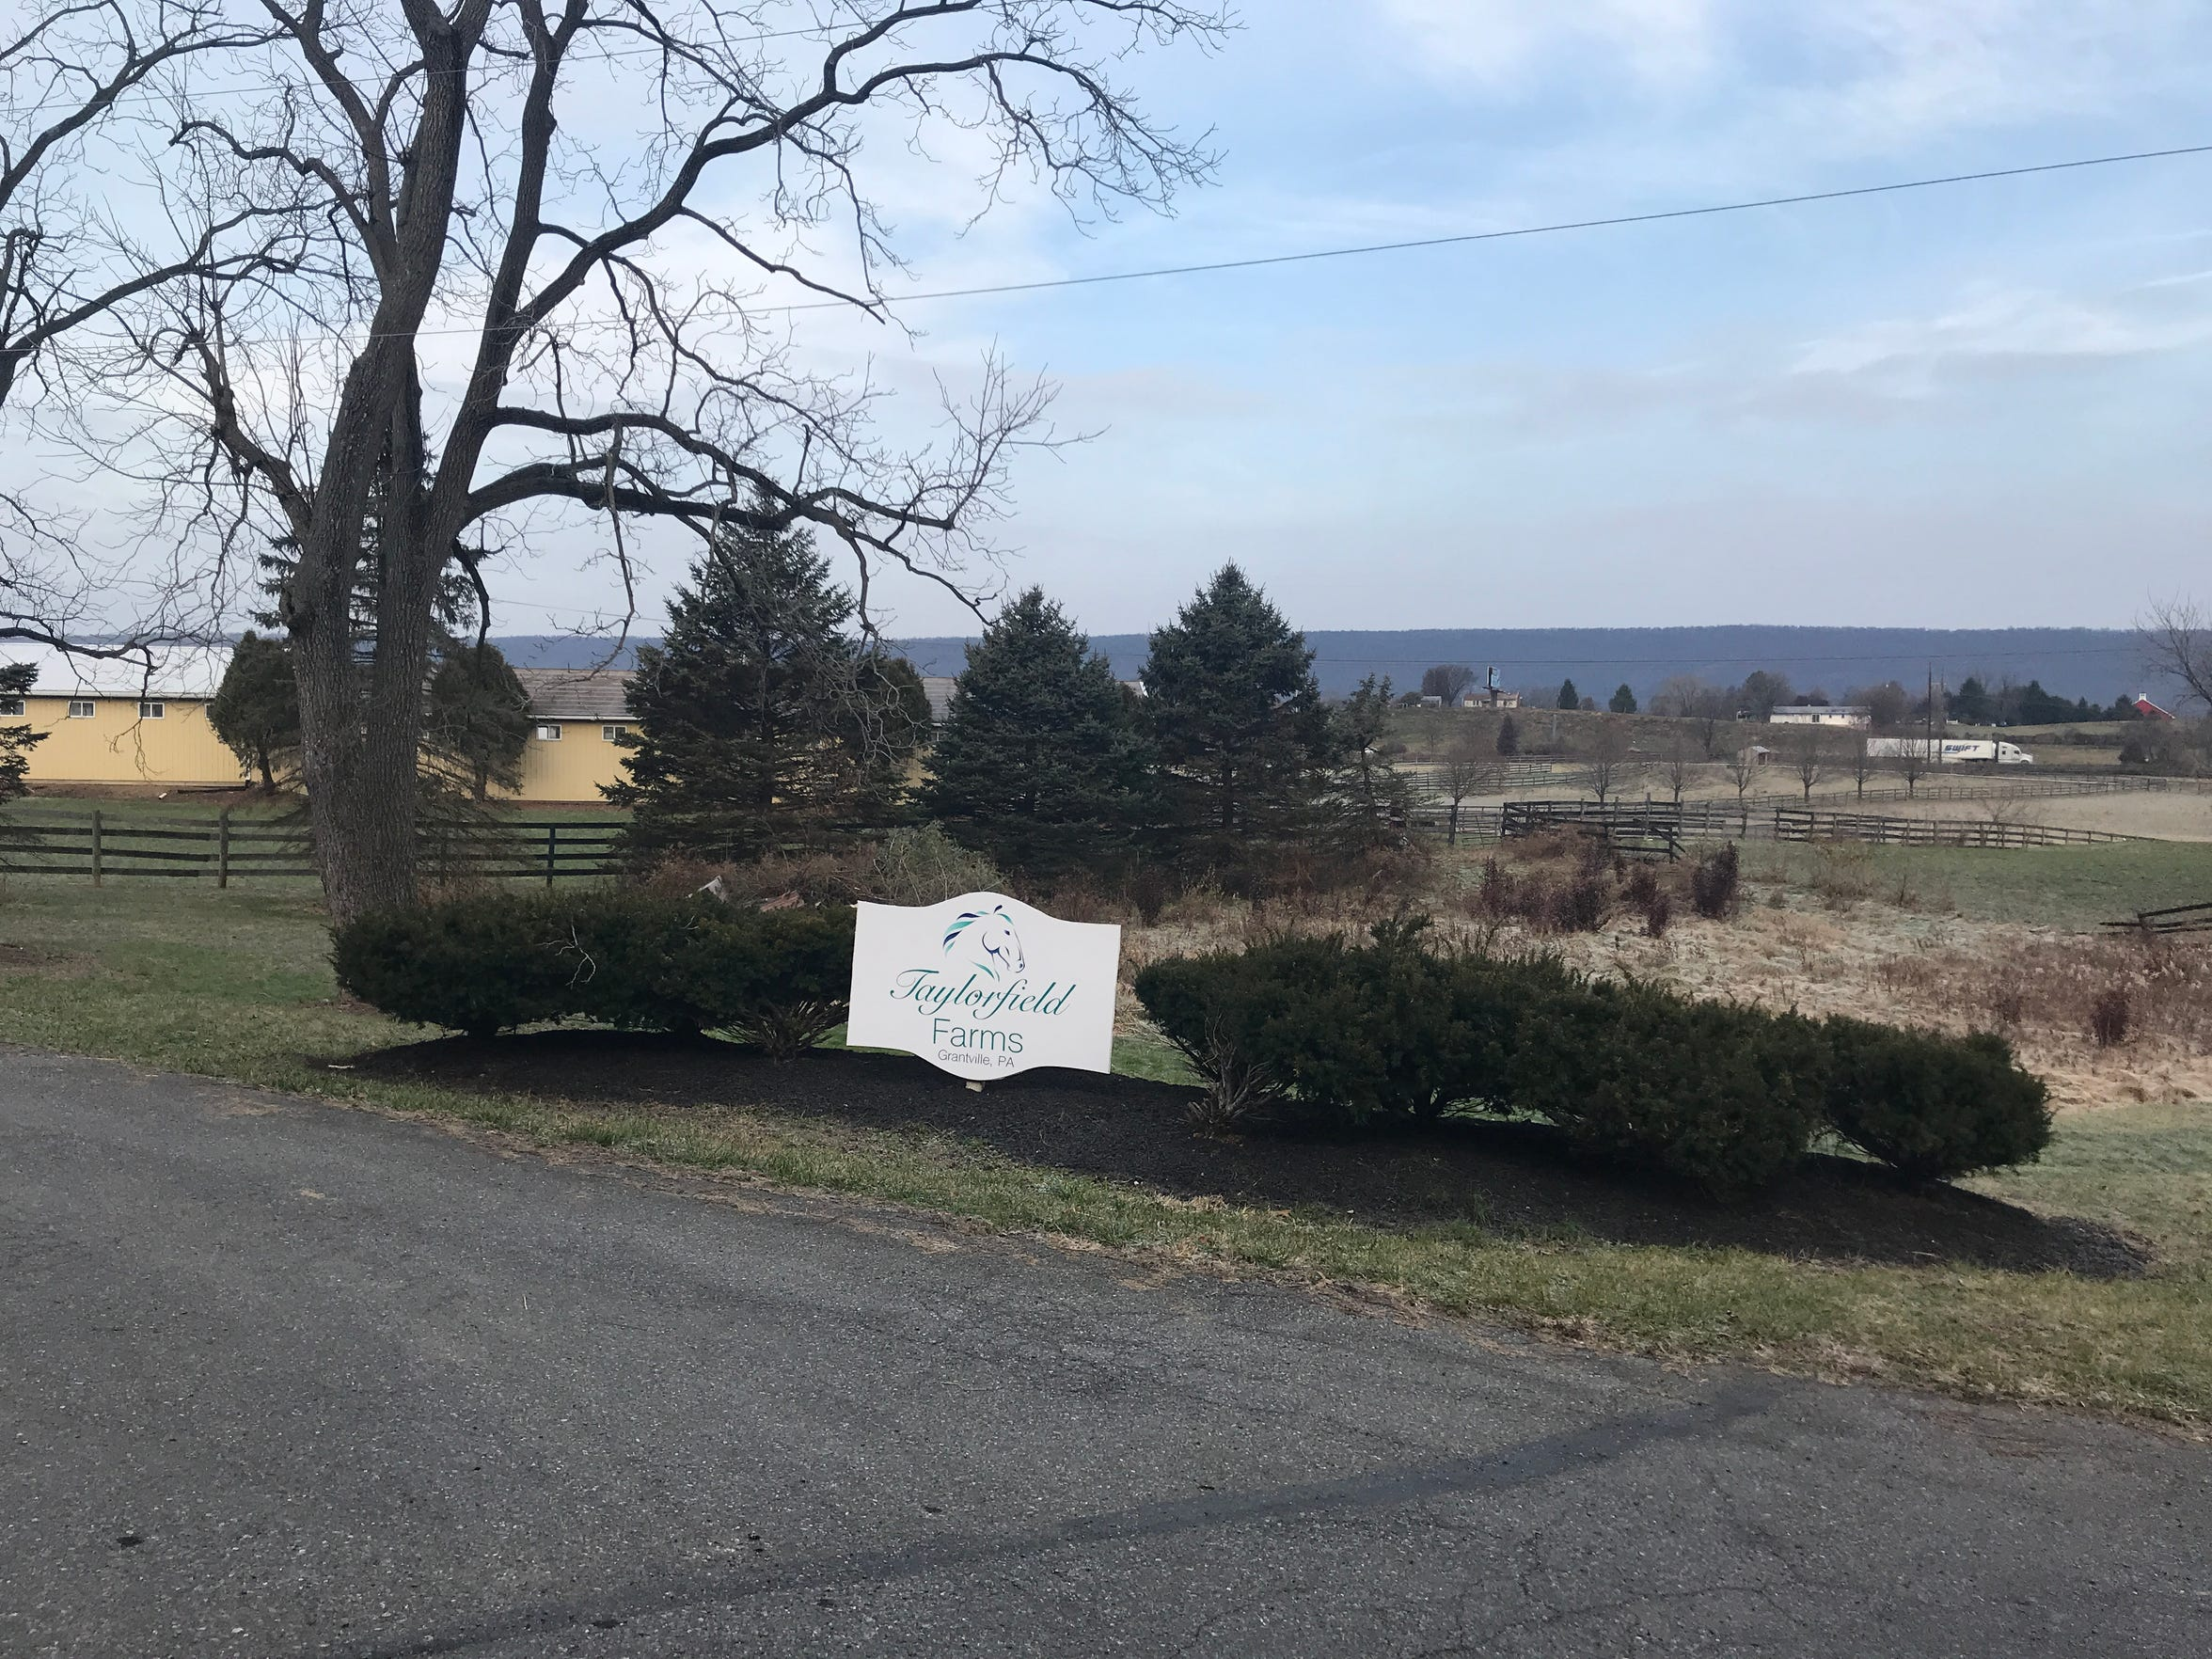 Taylorfield Farms, where a veterinarian claims Noria Mowrer improperly treated most of 16 horses in her care. The veterinarian was clear that Taylorfield Farms was not responsible for the abuse.